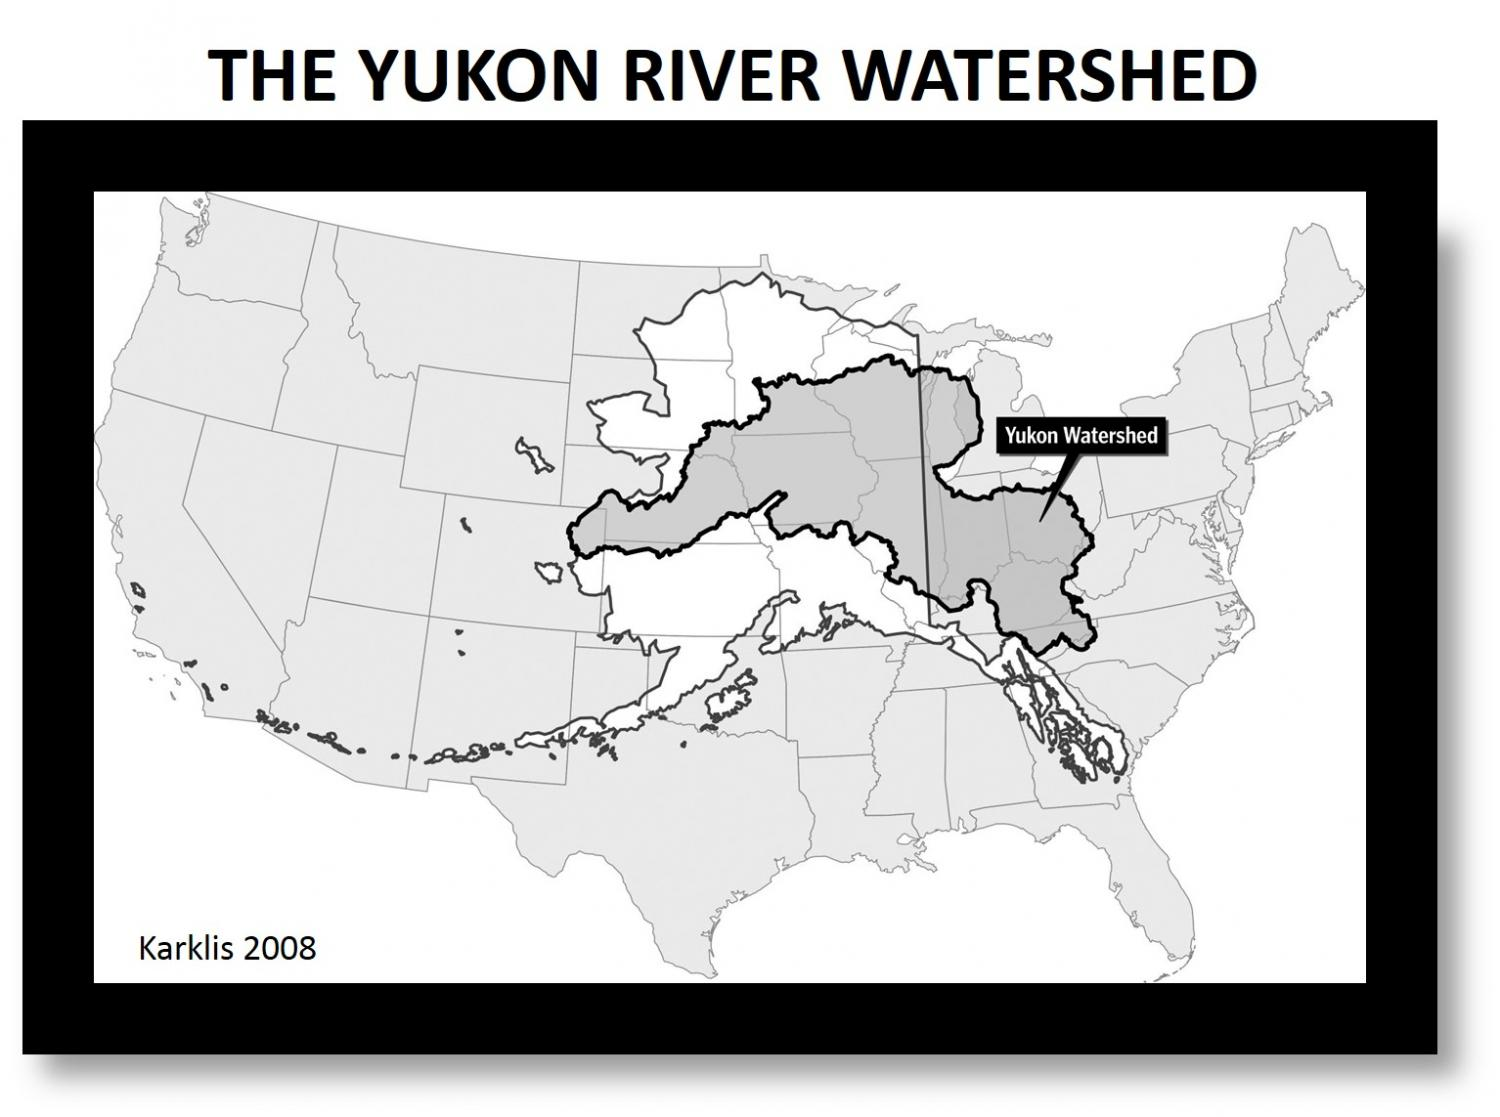 Permafrost Loss Changes Yukon River Chemistry With Global - Yukon river world map